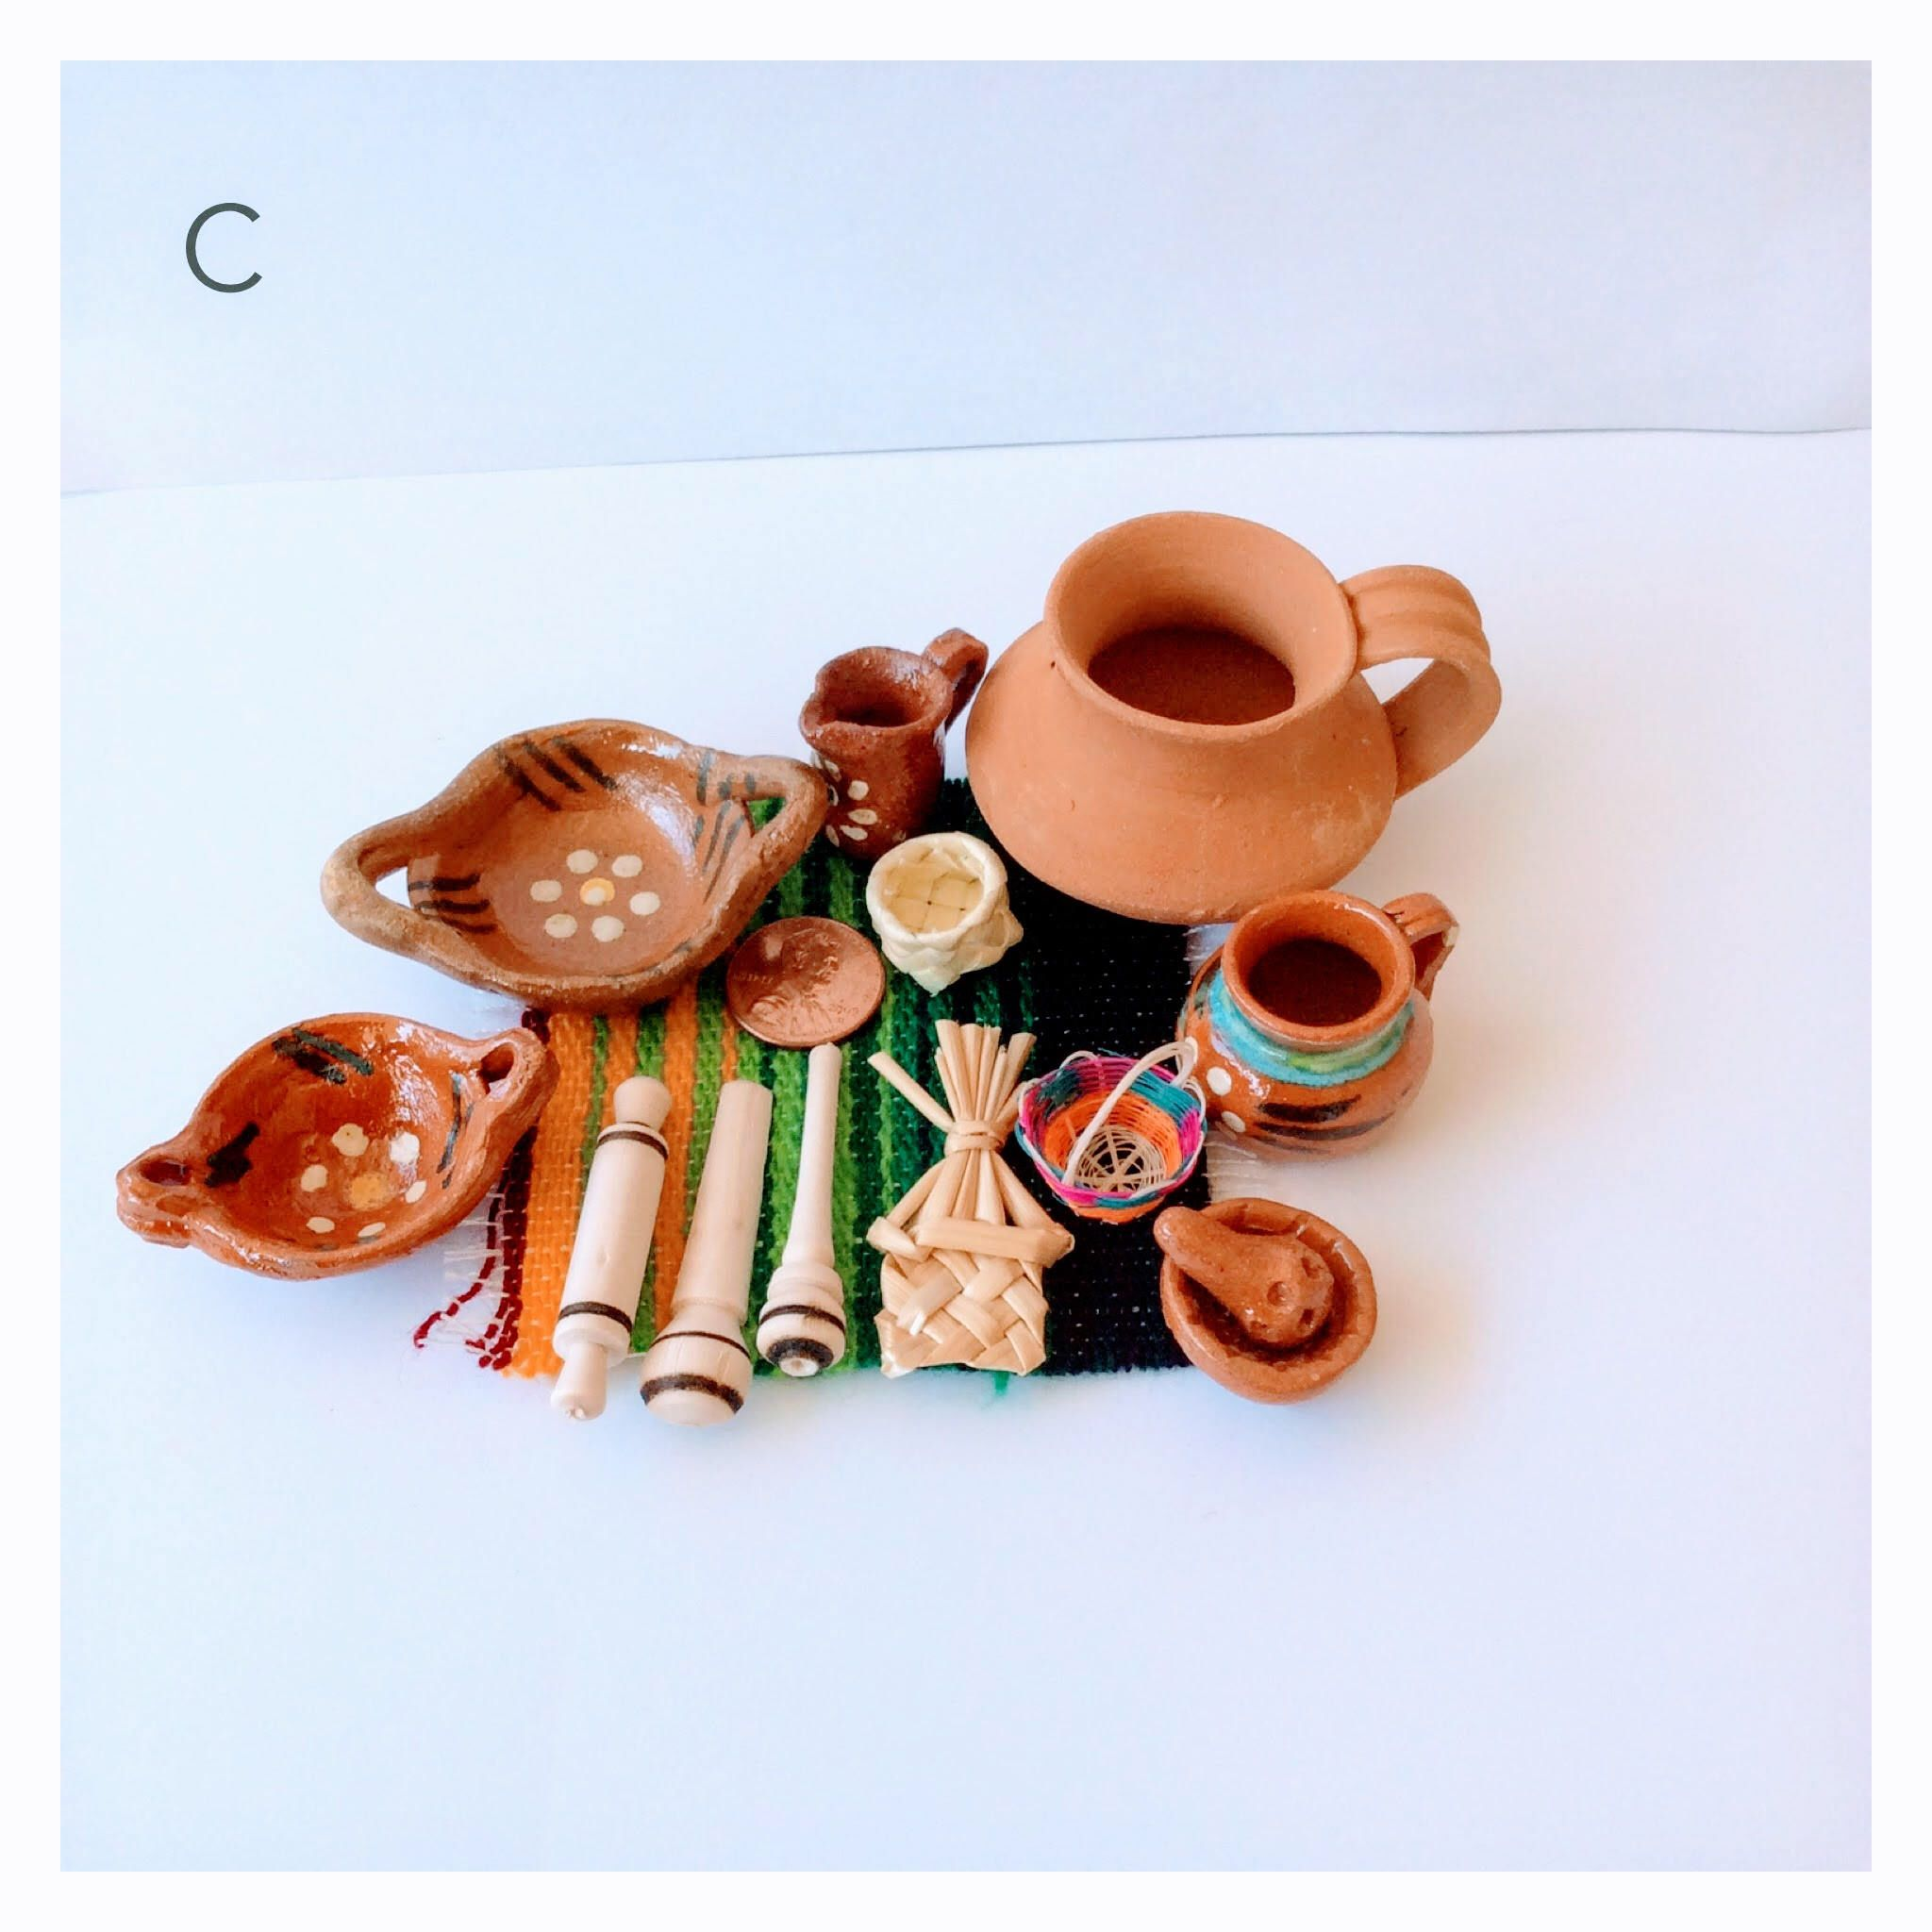 Miniature Clay Dishes Terra Cotta Clay Mexican Miniature Pottery Mug Vintage Miniature Day Of The Dead Frida Kahl Miniature Clay Pots Pottery Mugs Miniatures